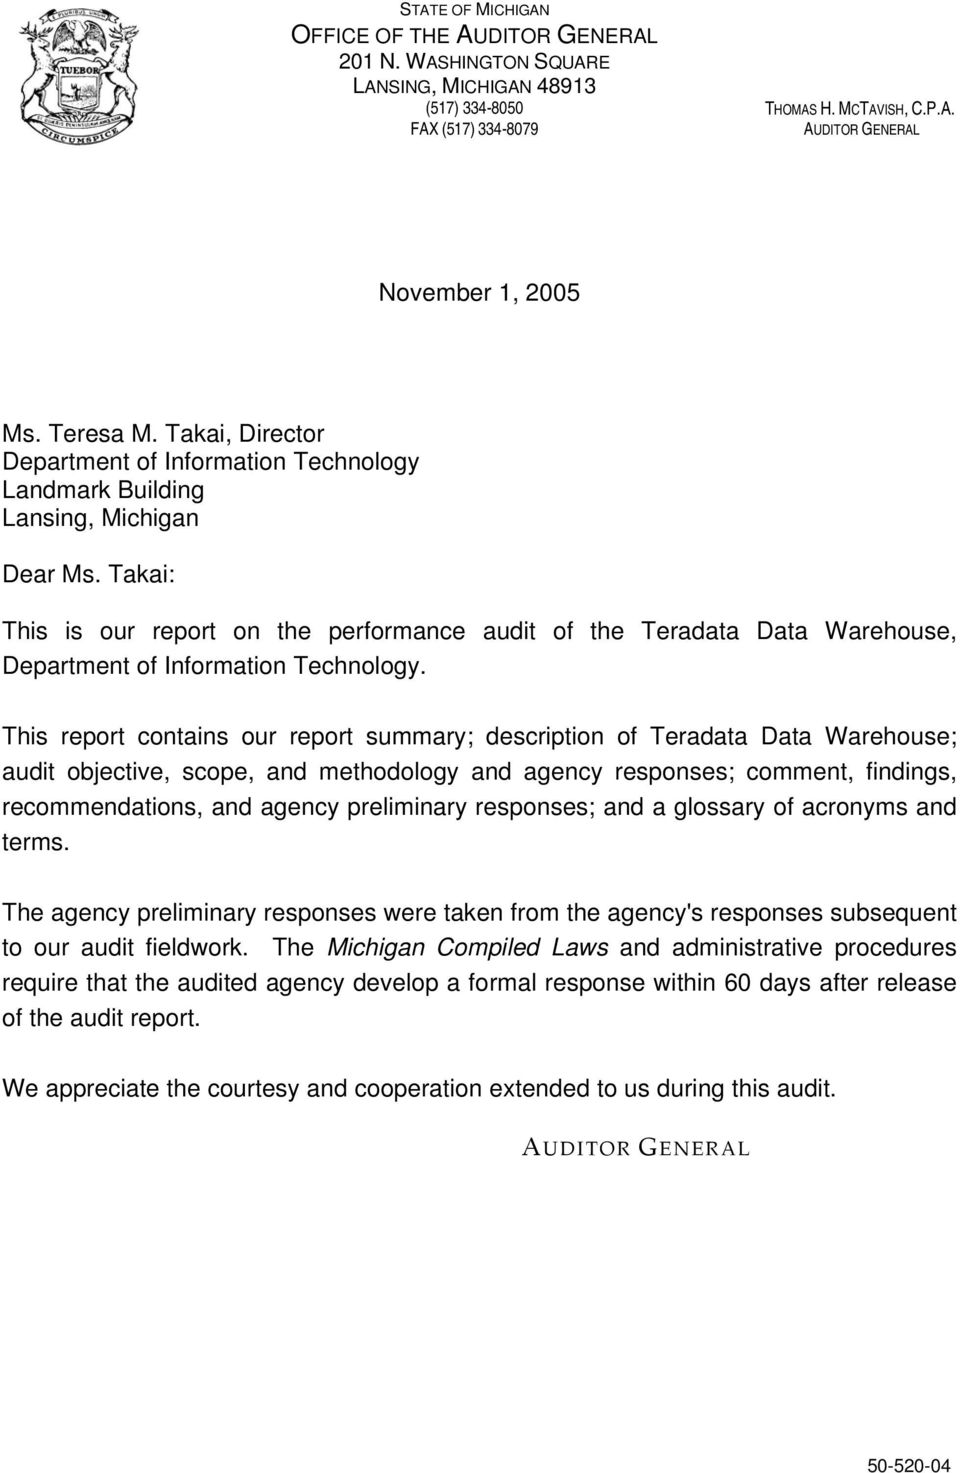 Takai: This is our report on the performance audit of the Teradata Data Warehouse, Department of Information Technology.